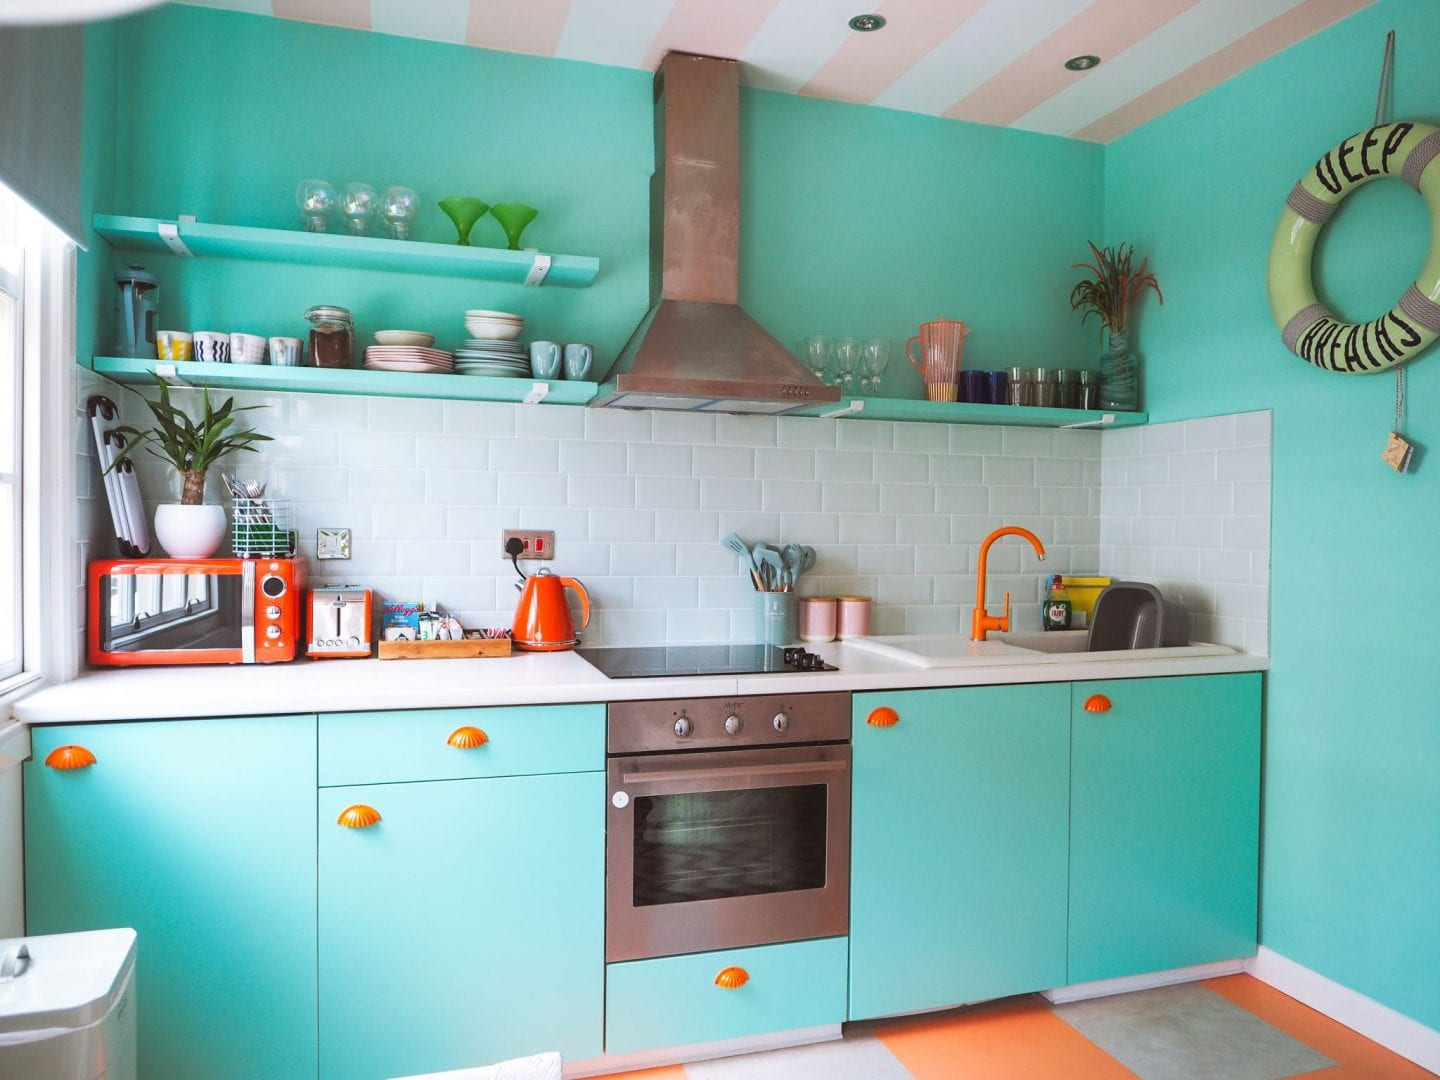 Margate suites hotel airbnb holiday cottage aqua and orange kitchen